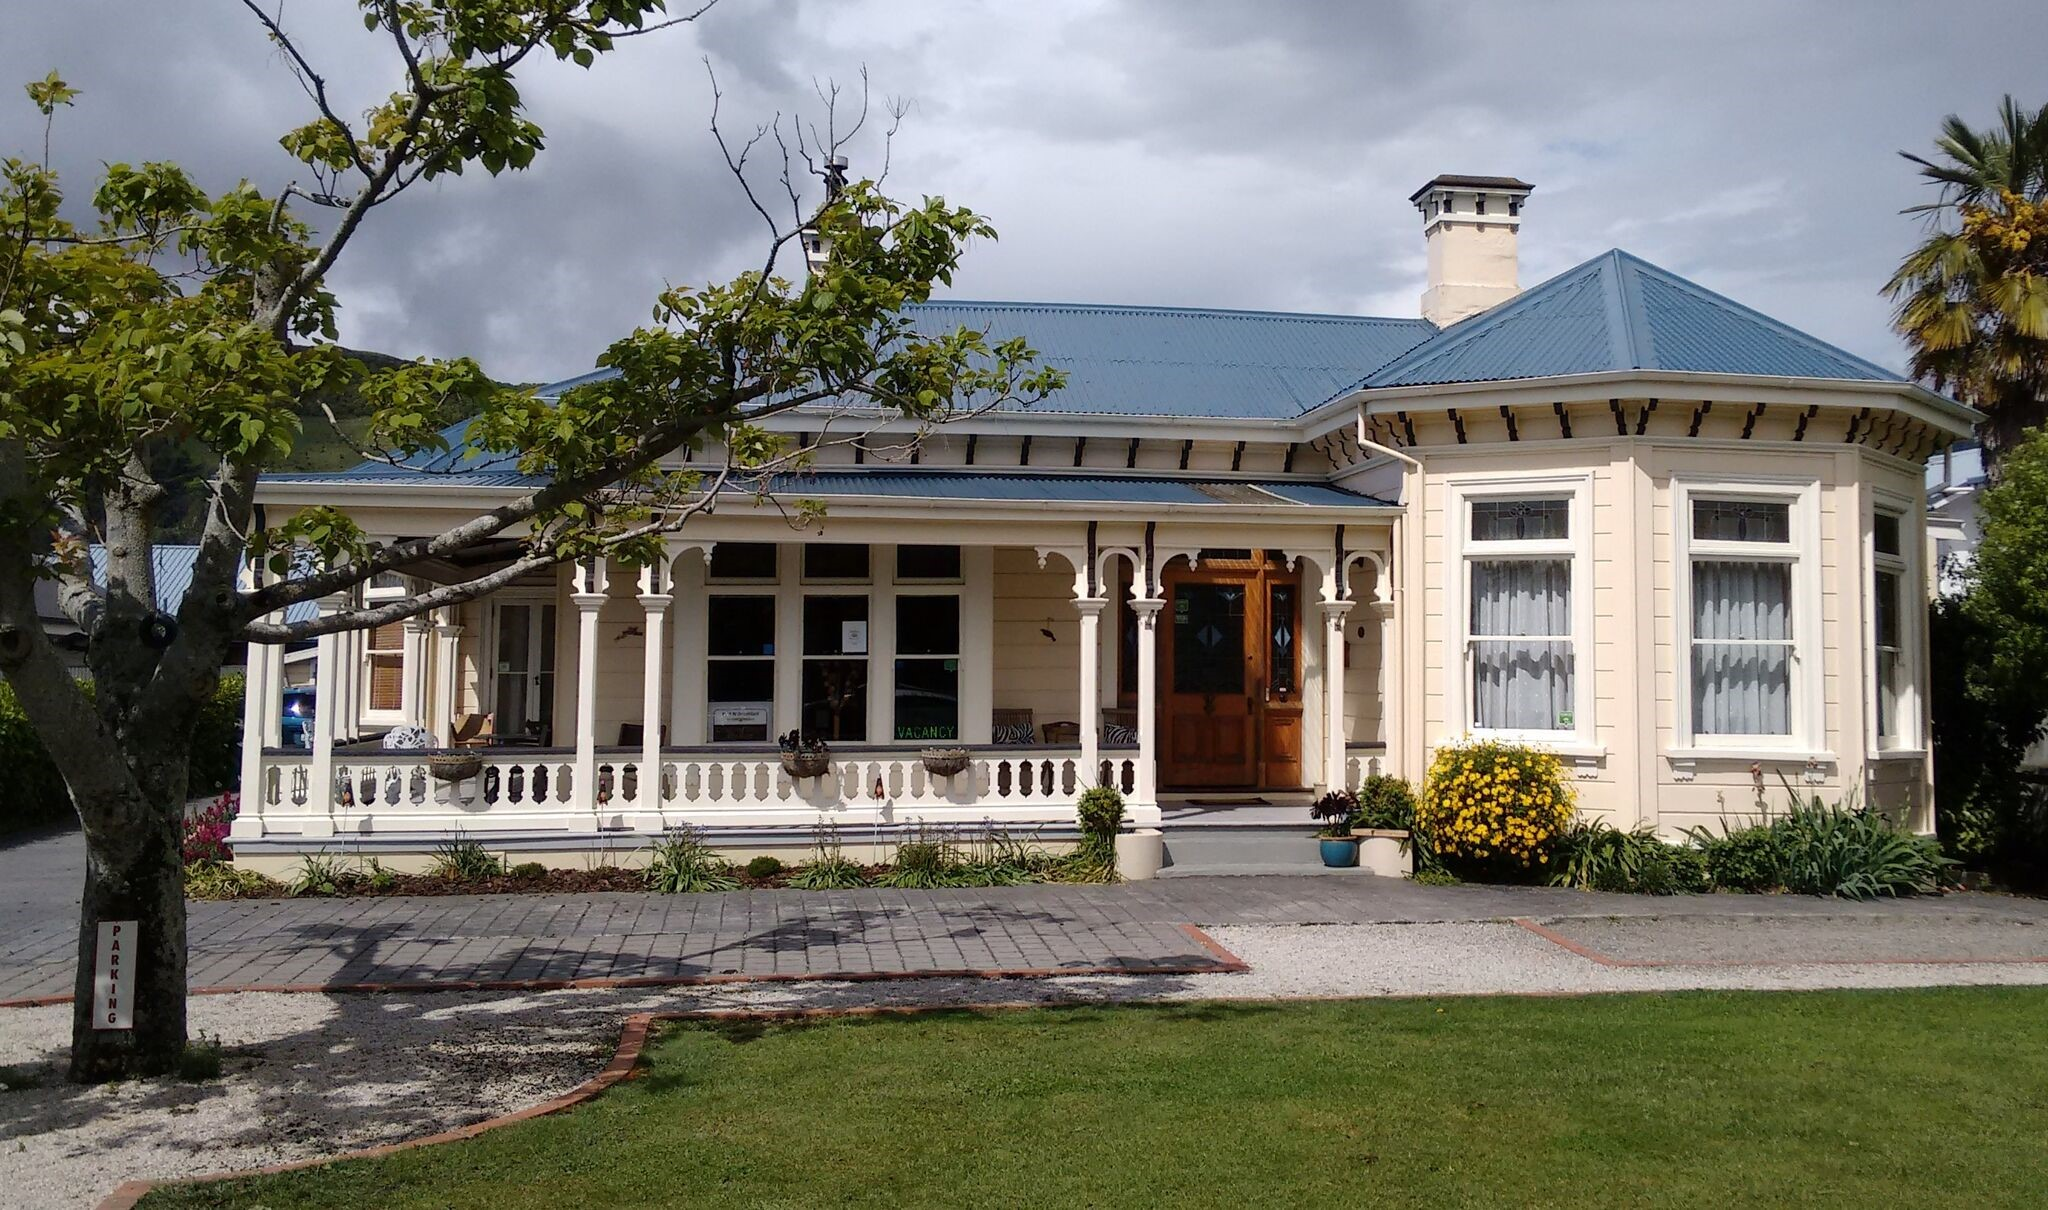 Collingwood Manor - The top-rated 3-star hotel in New Zealand